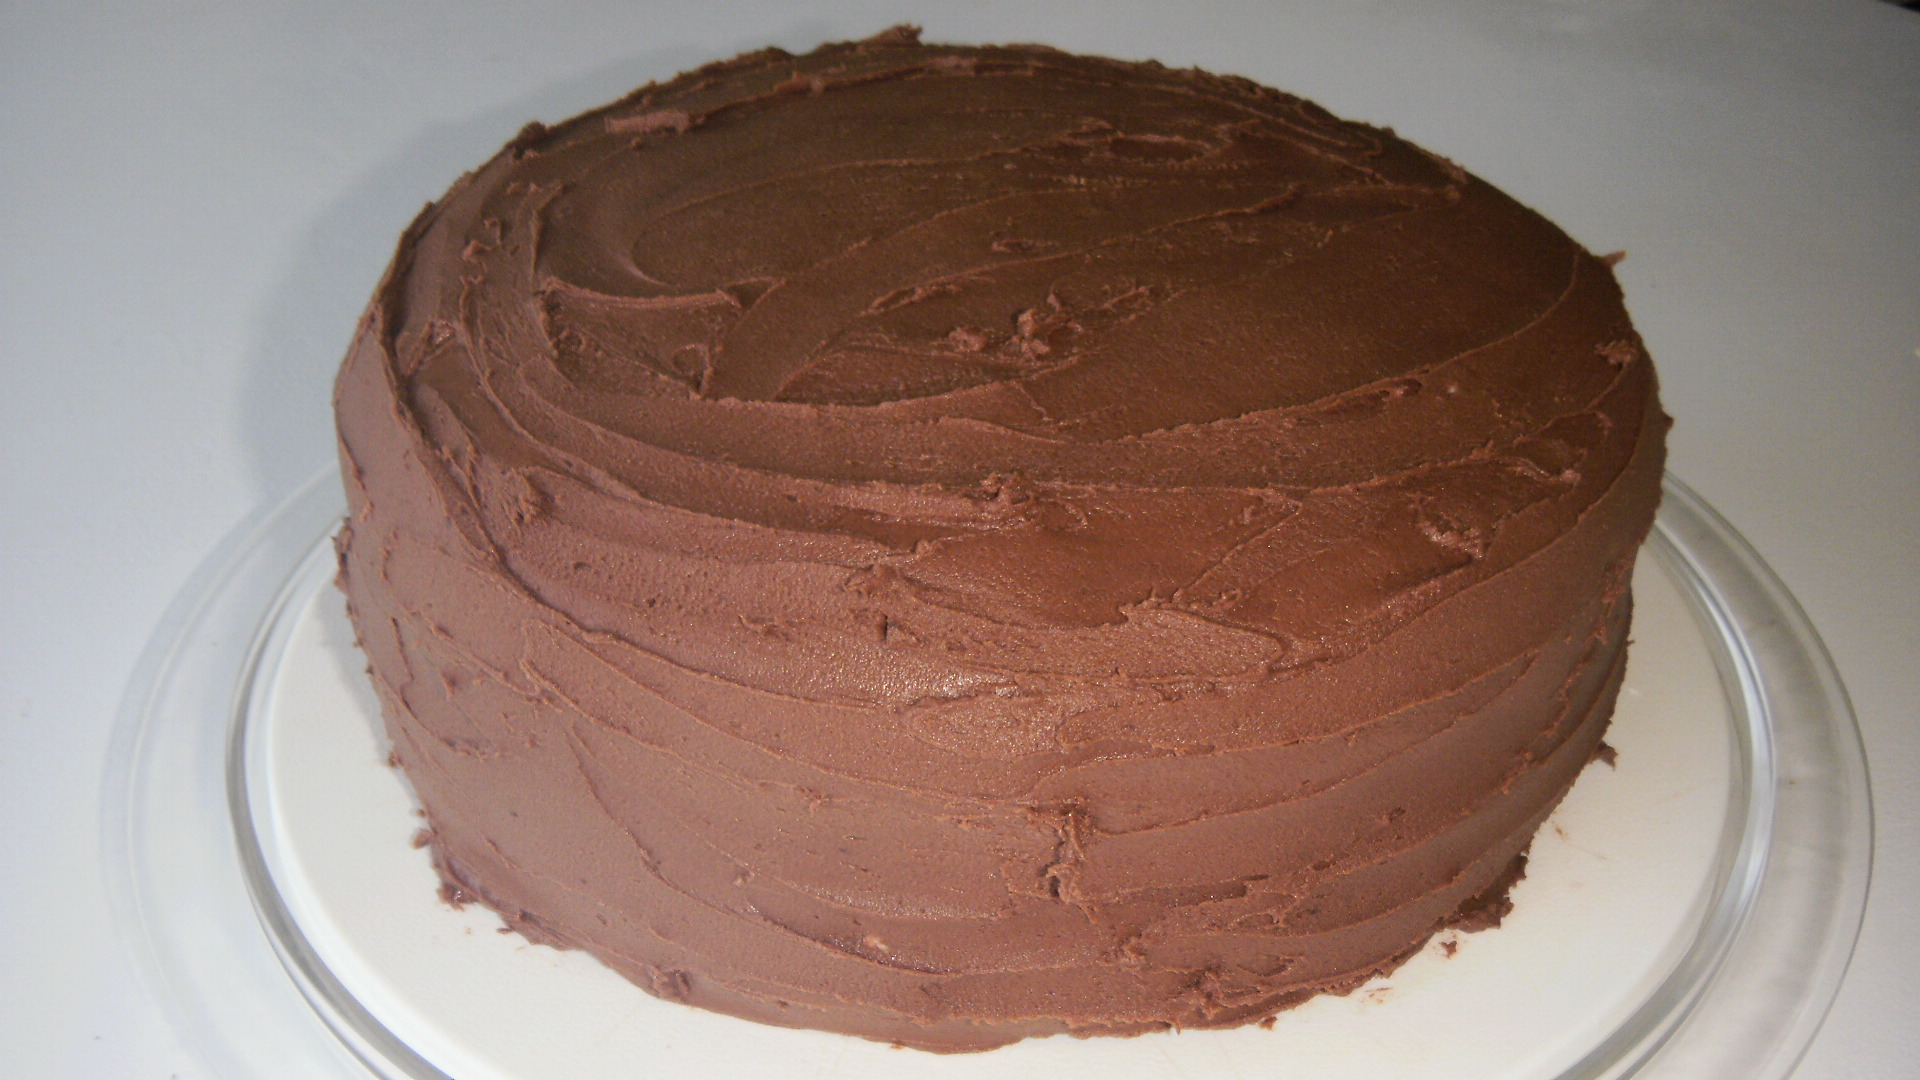 Egg And Dairy Free Chocolate Cake Recipe